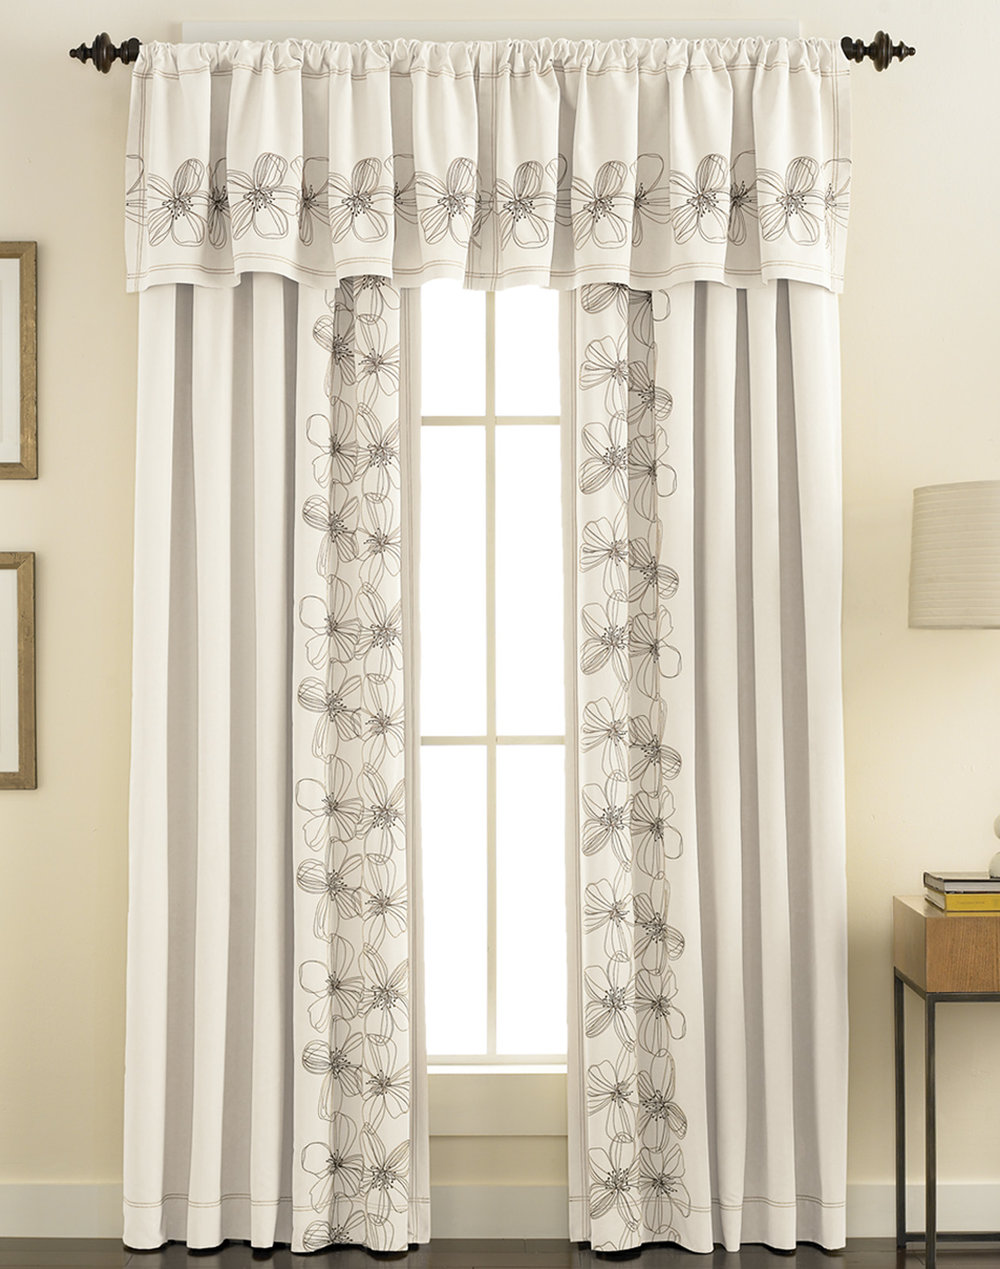 artisan drapery / valances  / curtains    From a sweeping grand statement to every subtle detail,  Artisan custom fabric window treatments are designed to accentuate the windows and furnishings in your home — and to impress your guests.